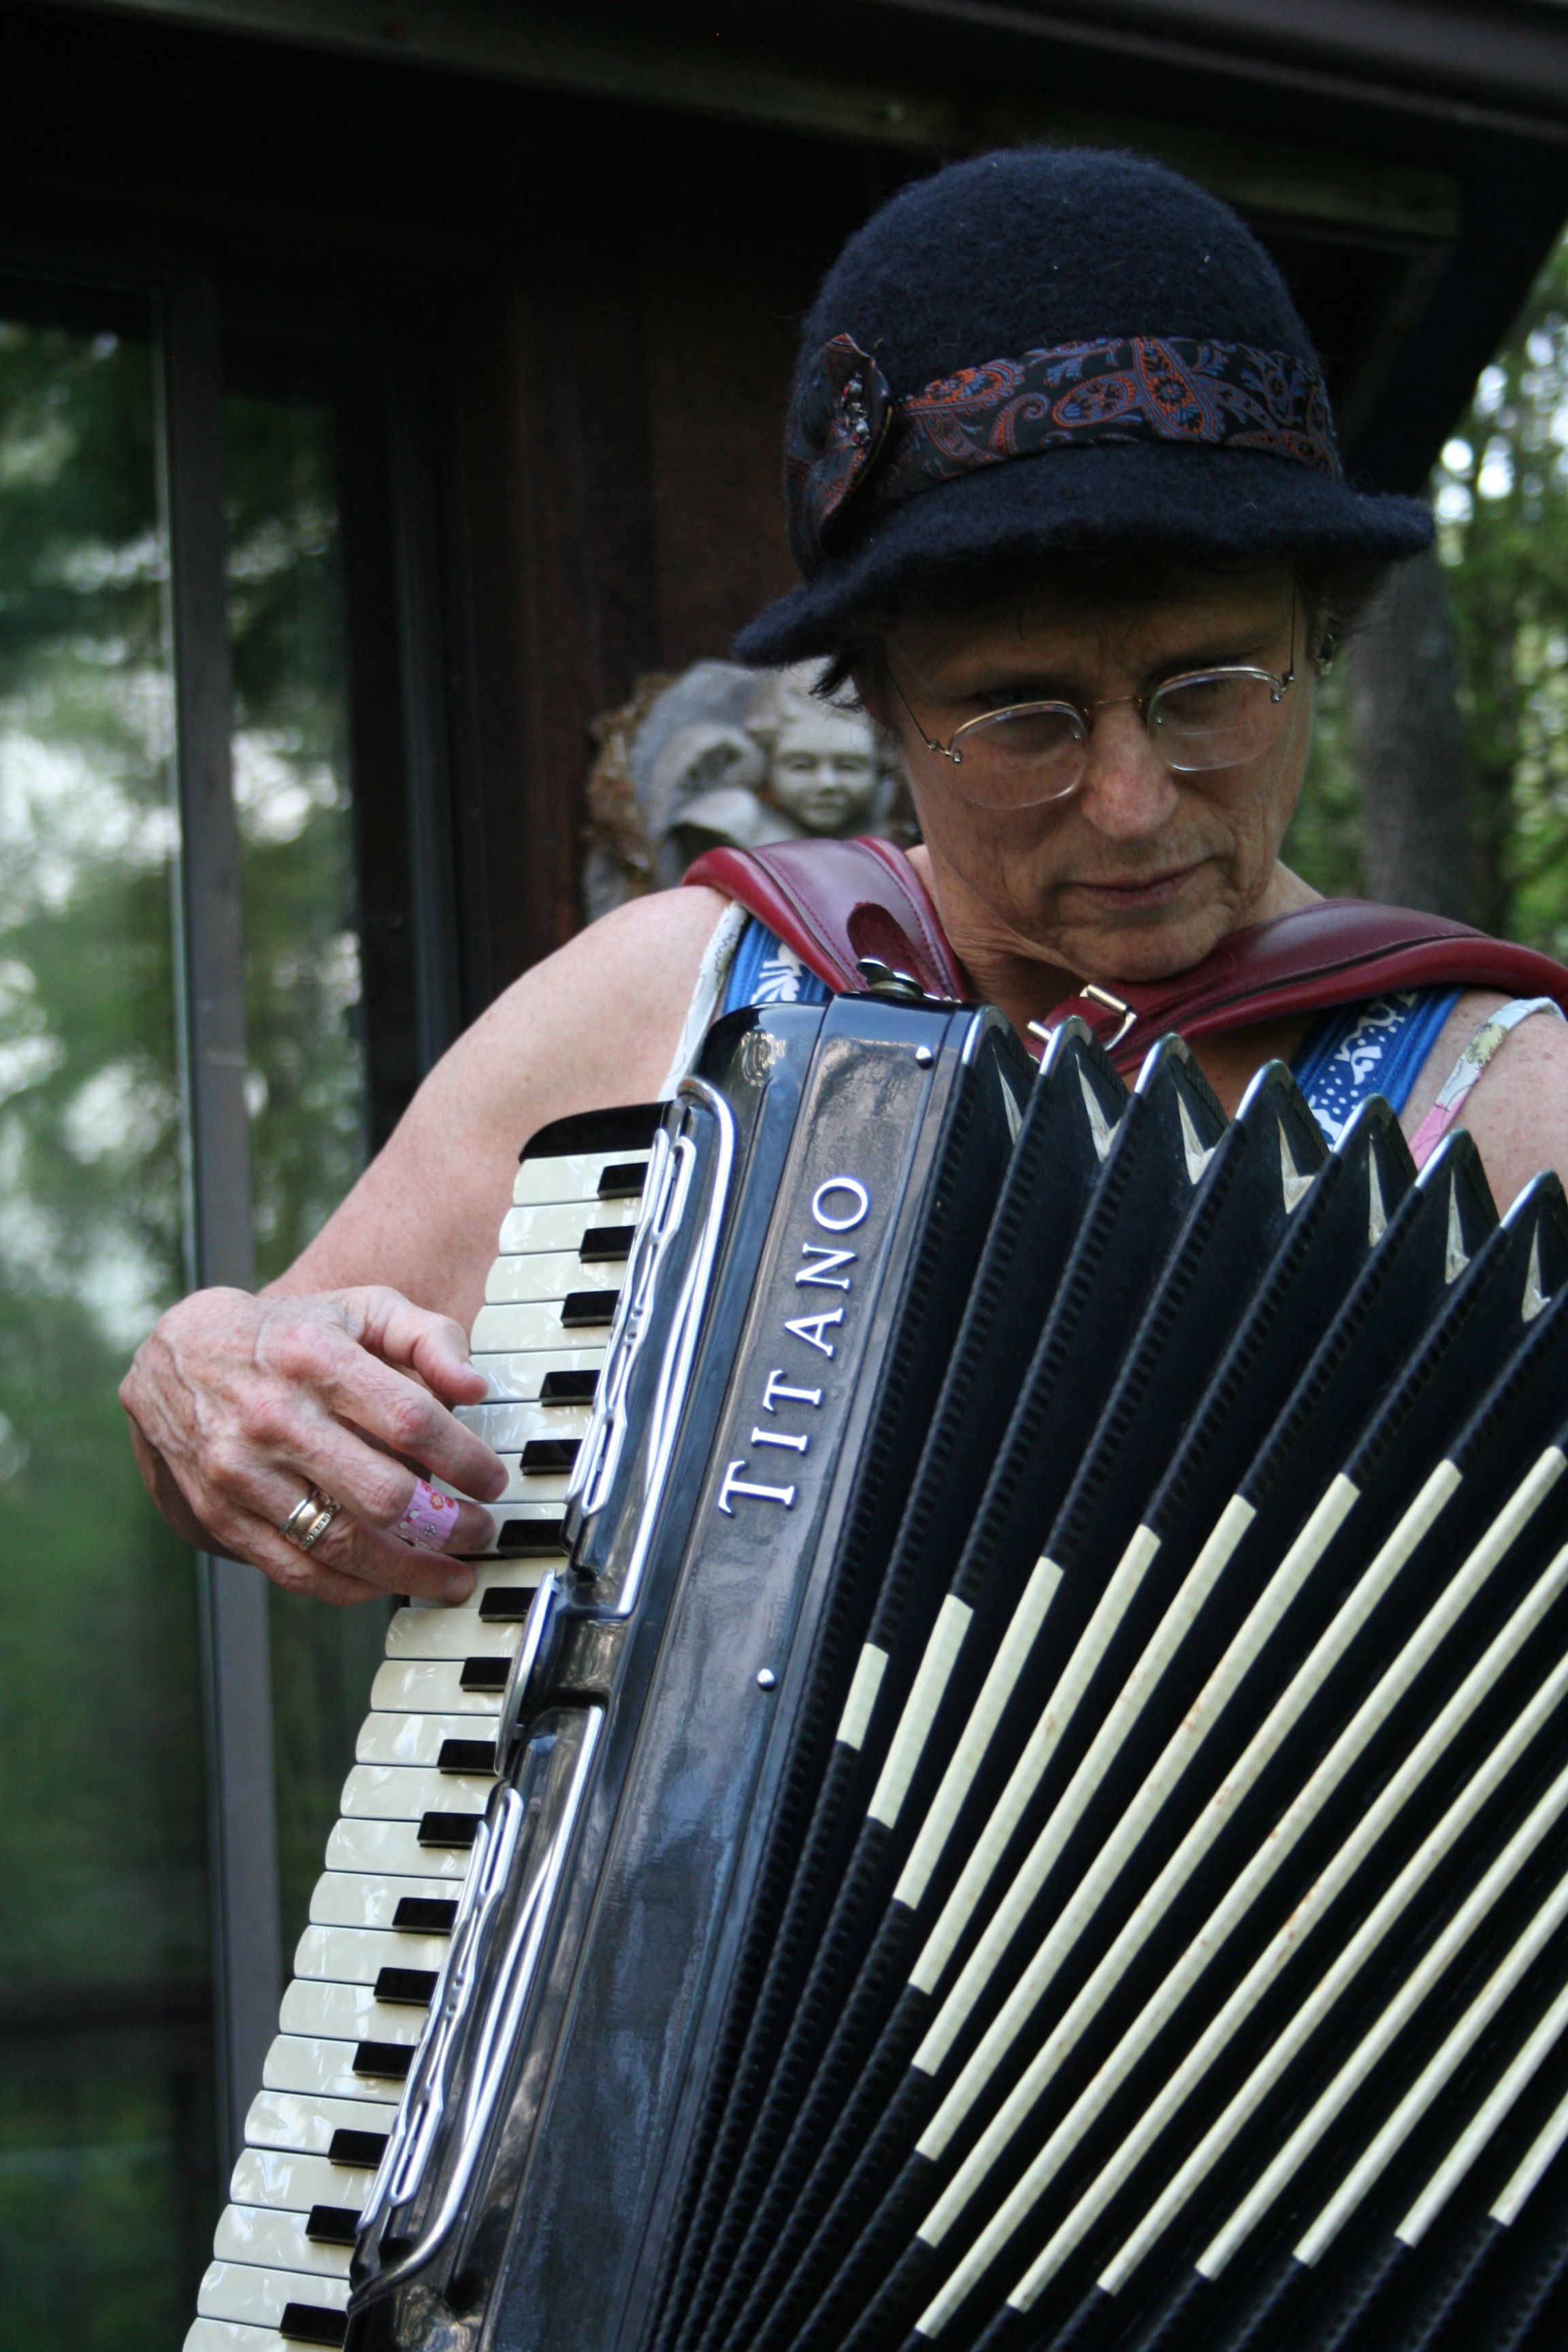 clandestine accordion playing